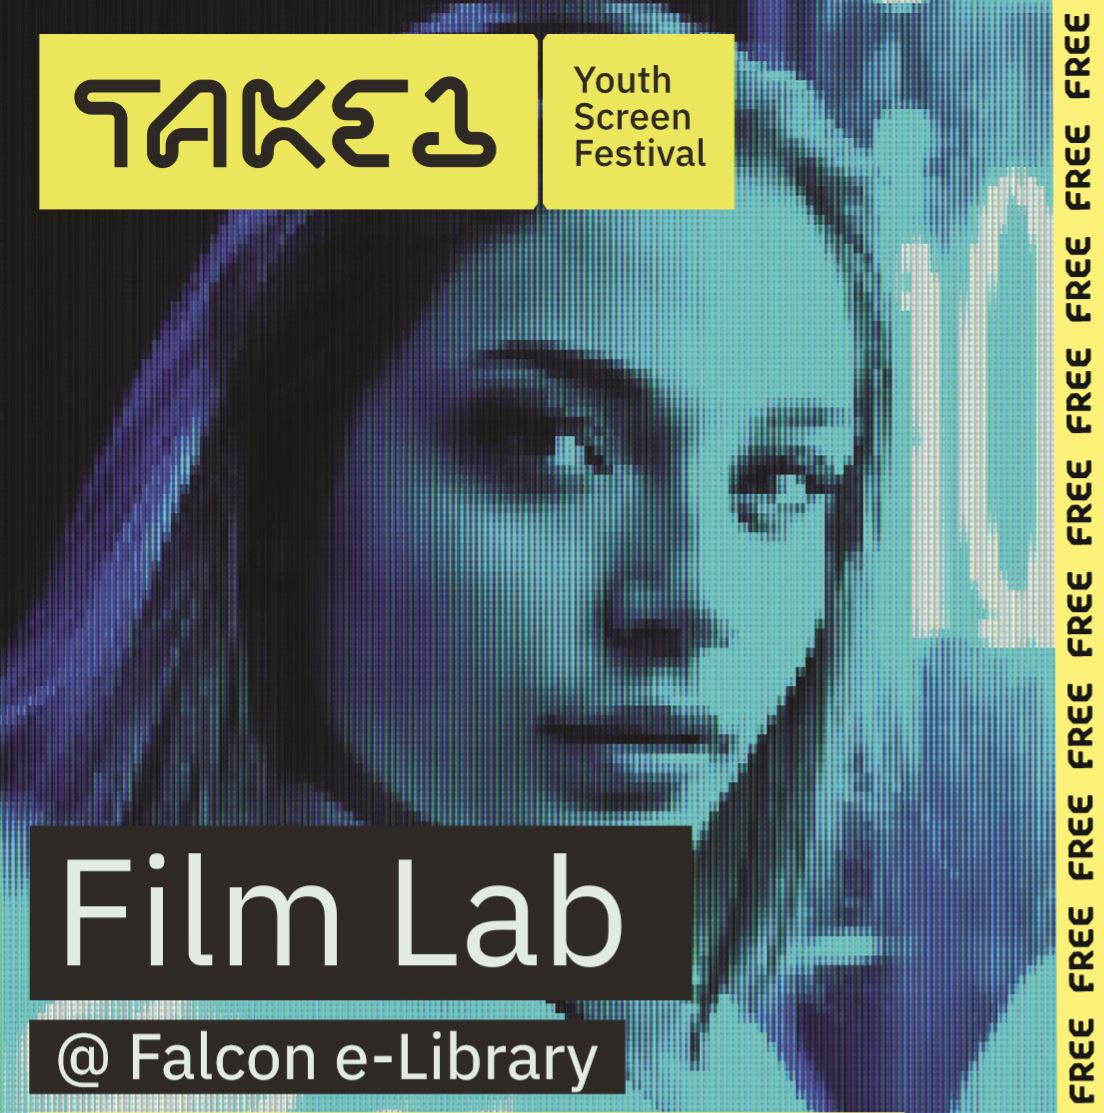 Film Lab Session 2